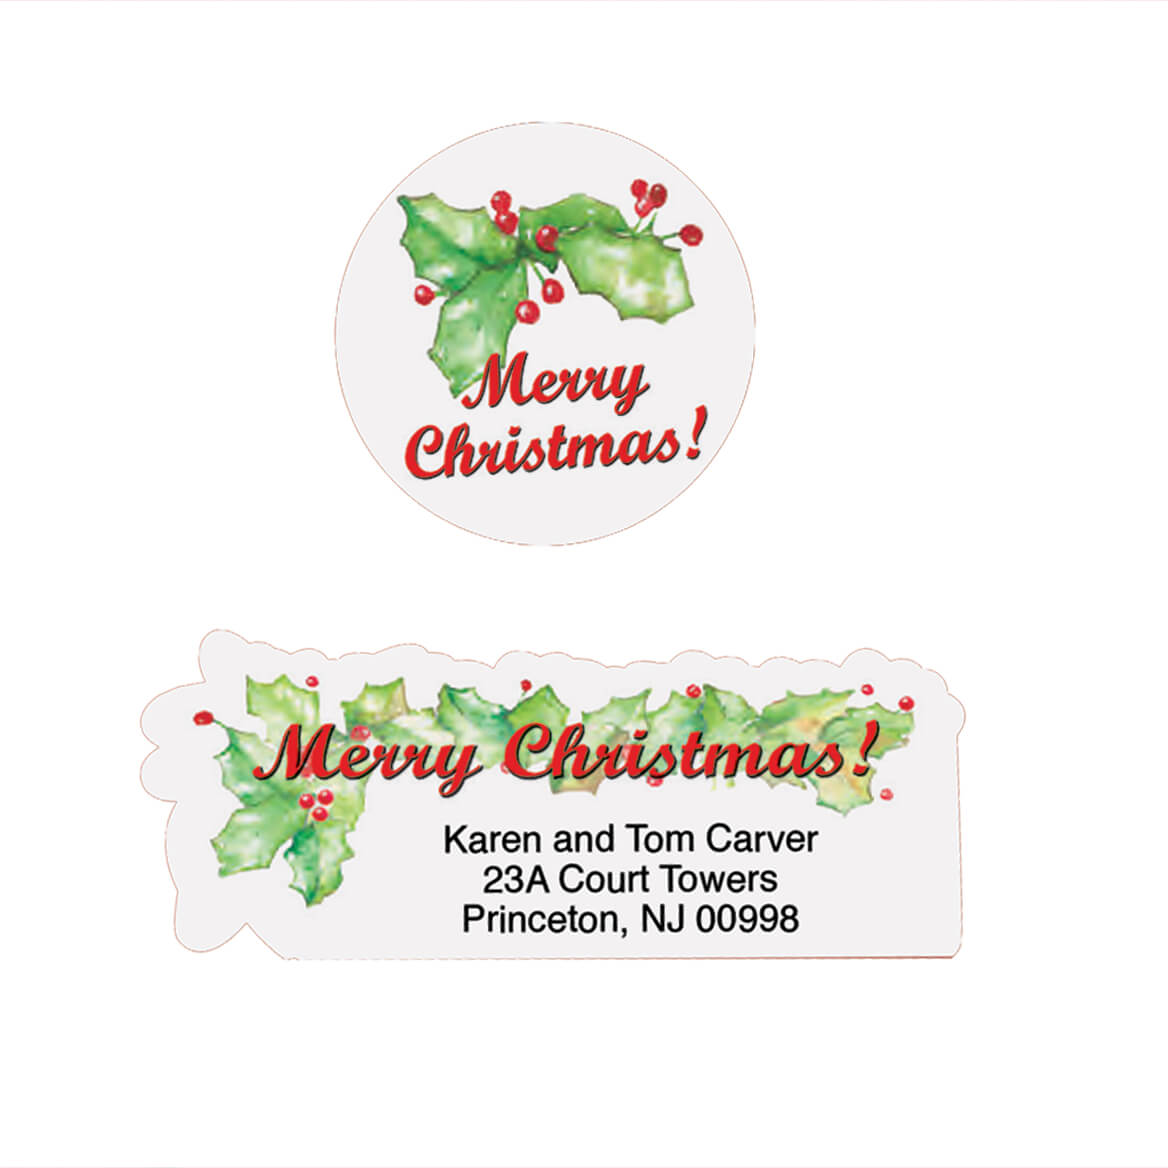 Merry Christmas Labels.Merry Christmas Labels And Seals Set